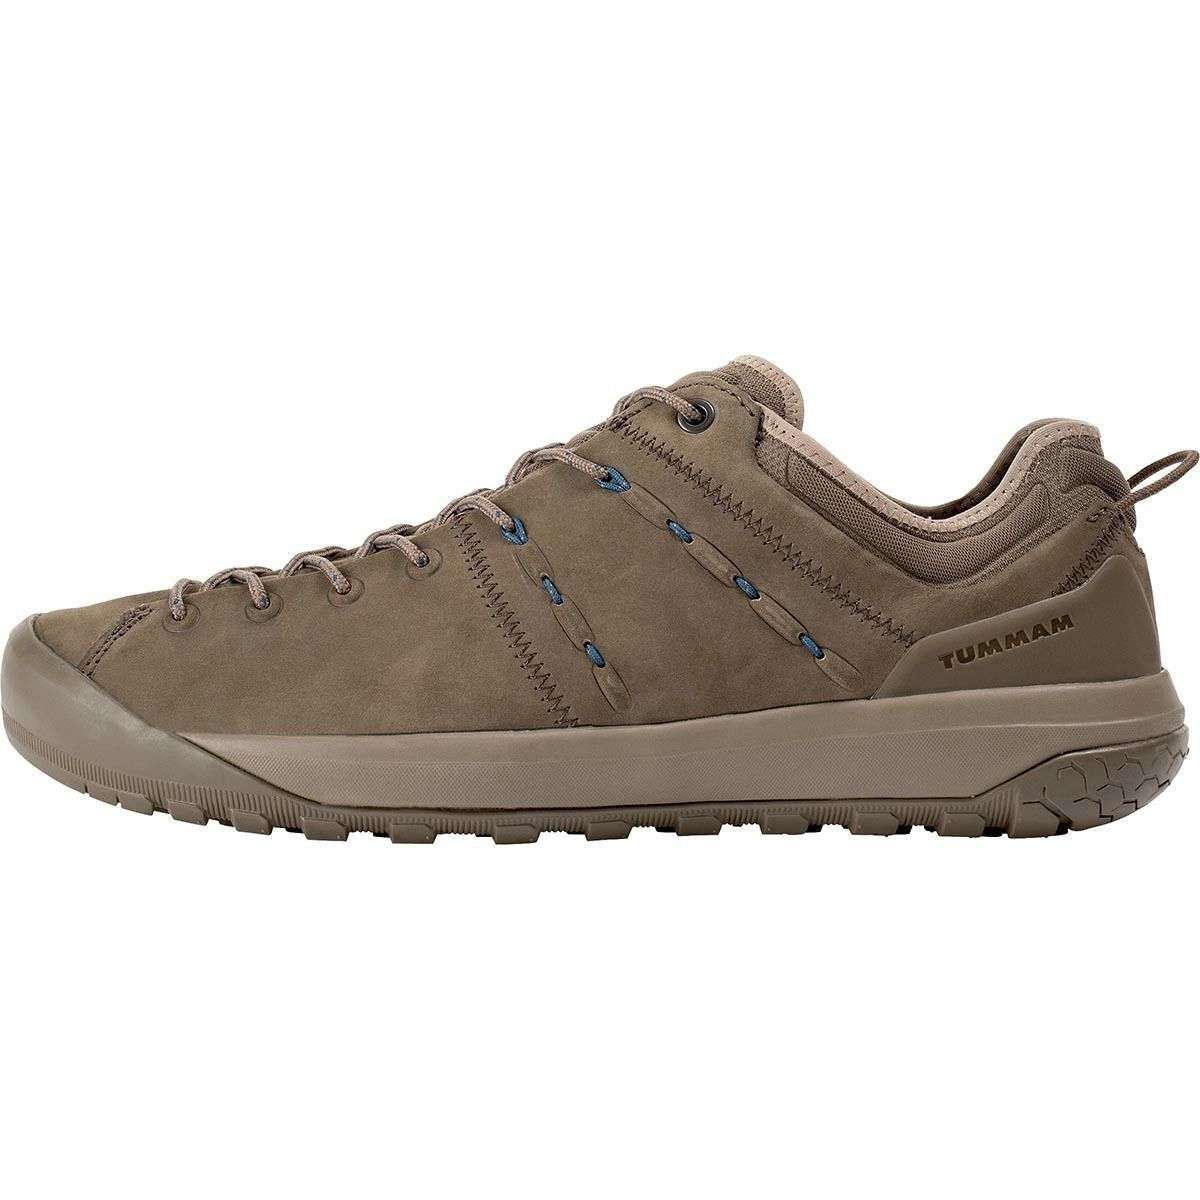 Mammut Hueco Low LTH Shoe - Men's